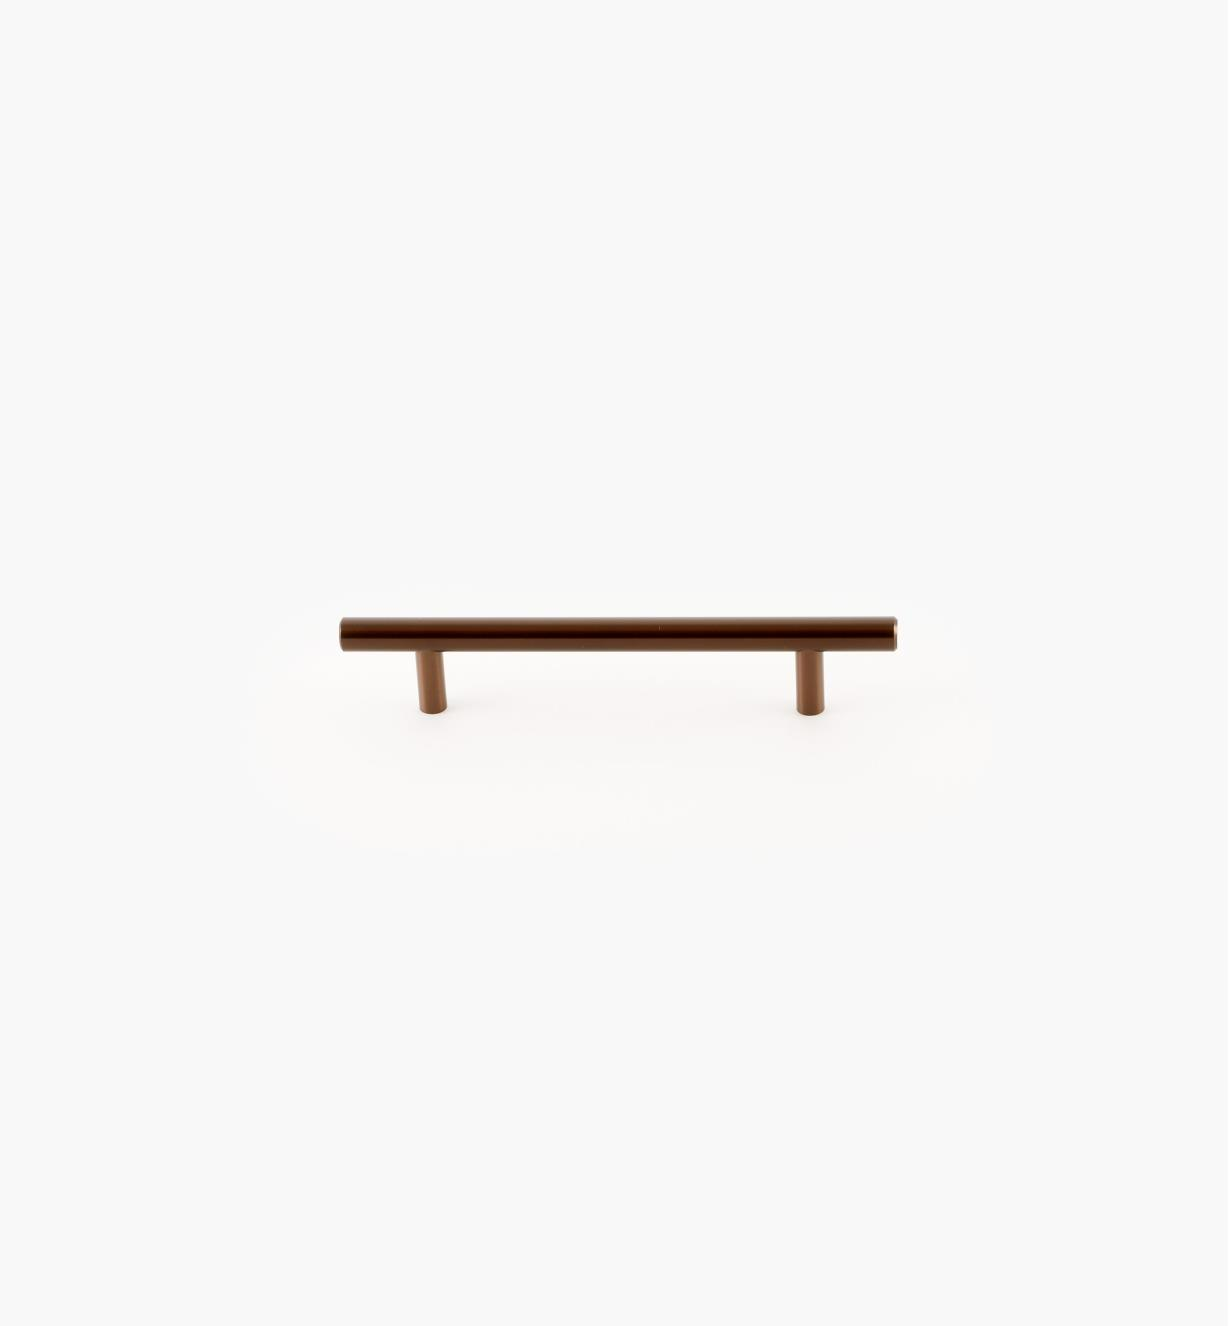 02A1477 - Bar Caramel Bronze 128mm (187mm) Pull, each